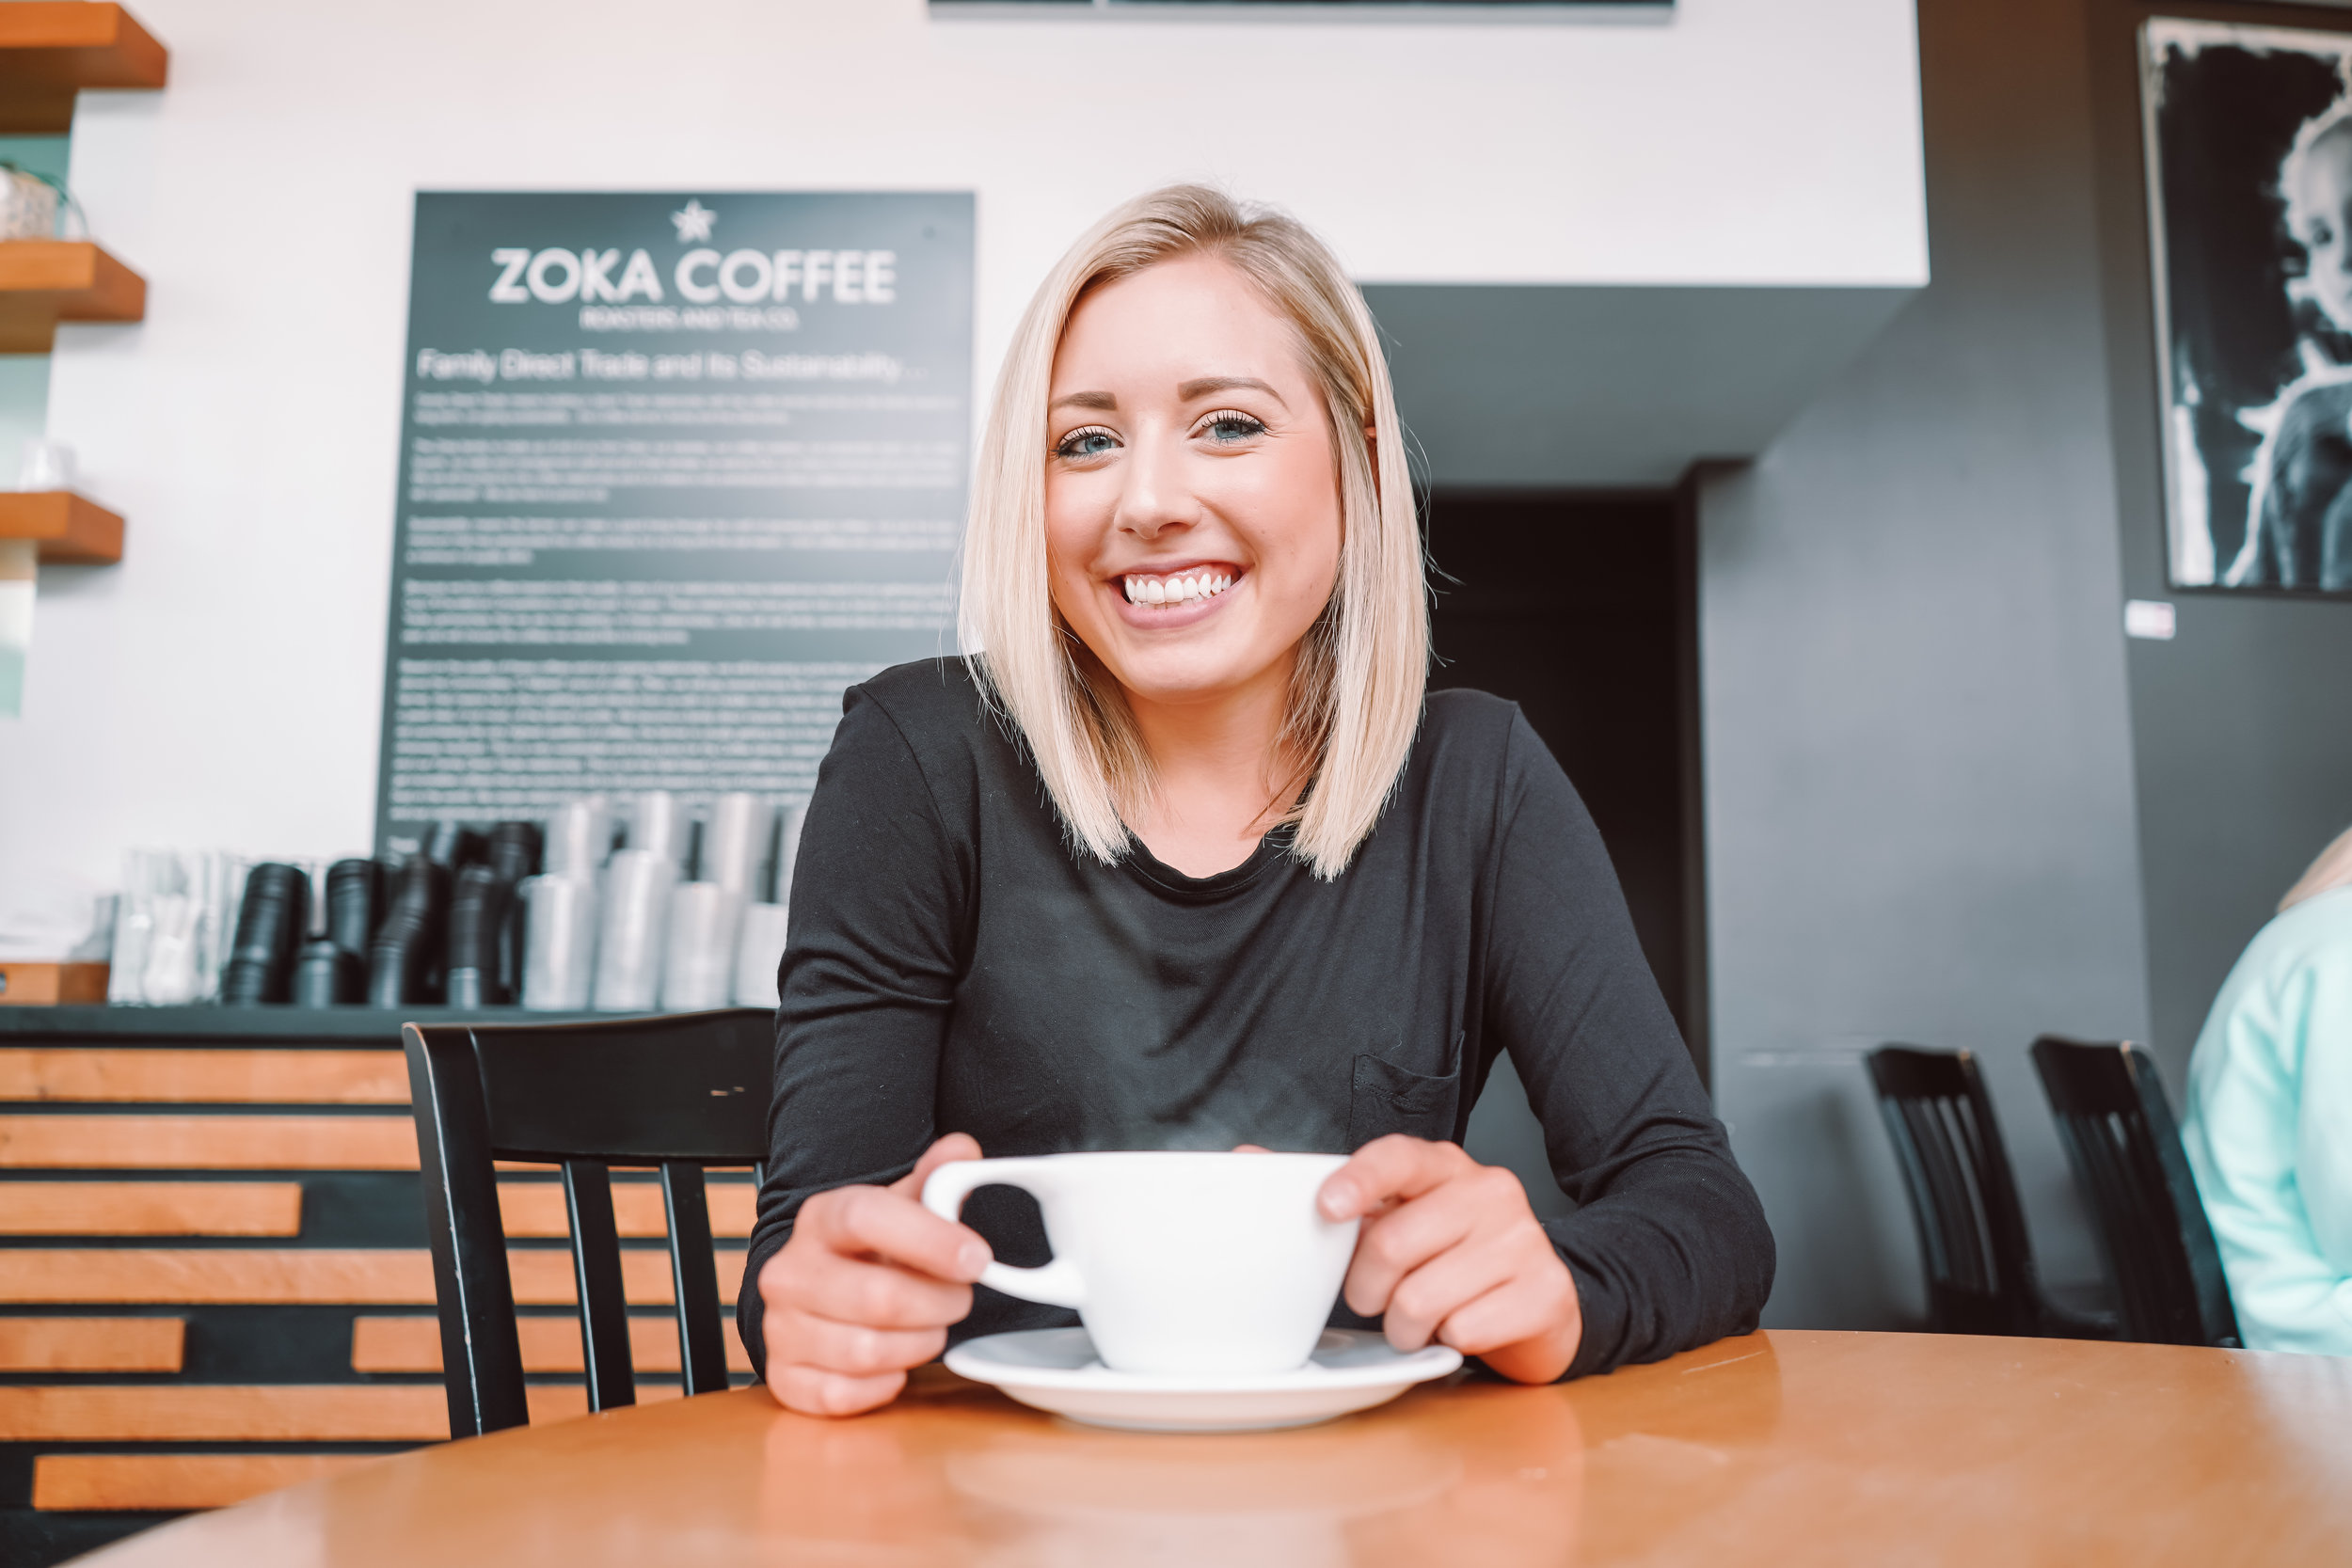 I'm Nat - an entrepreneur who's completely in love with running her own business and helping other women do the same. - read more about me here